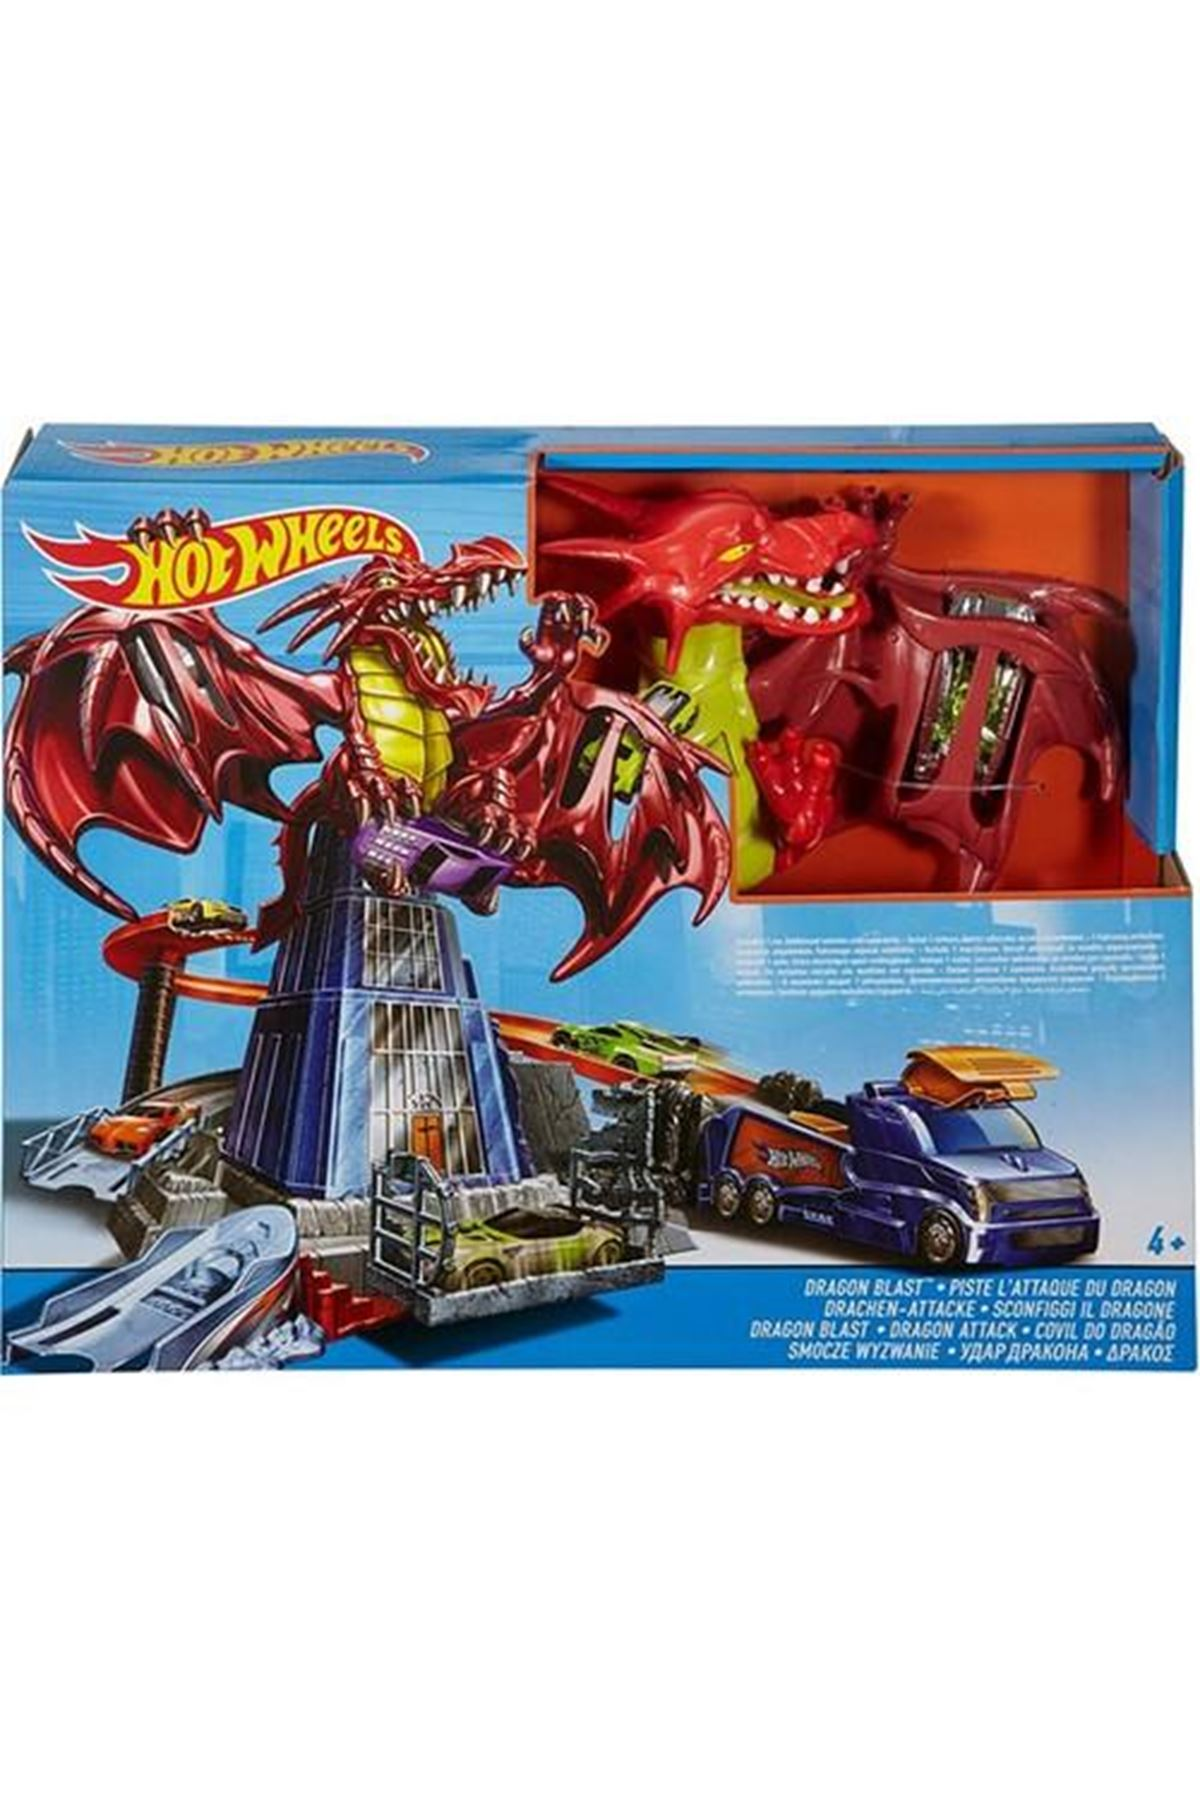 Hot Wheels Ejderha Macerası Oyun Seti DWL04